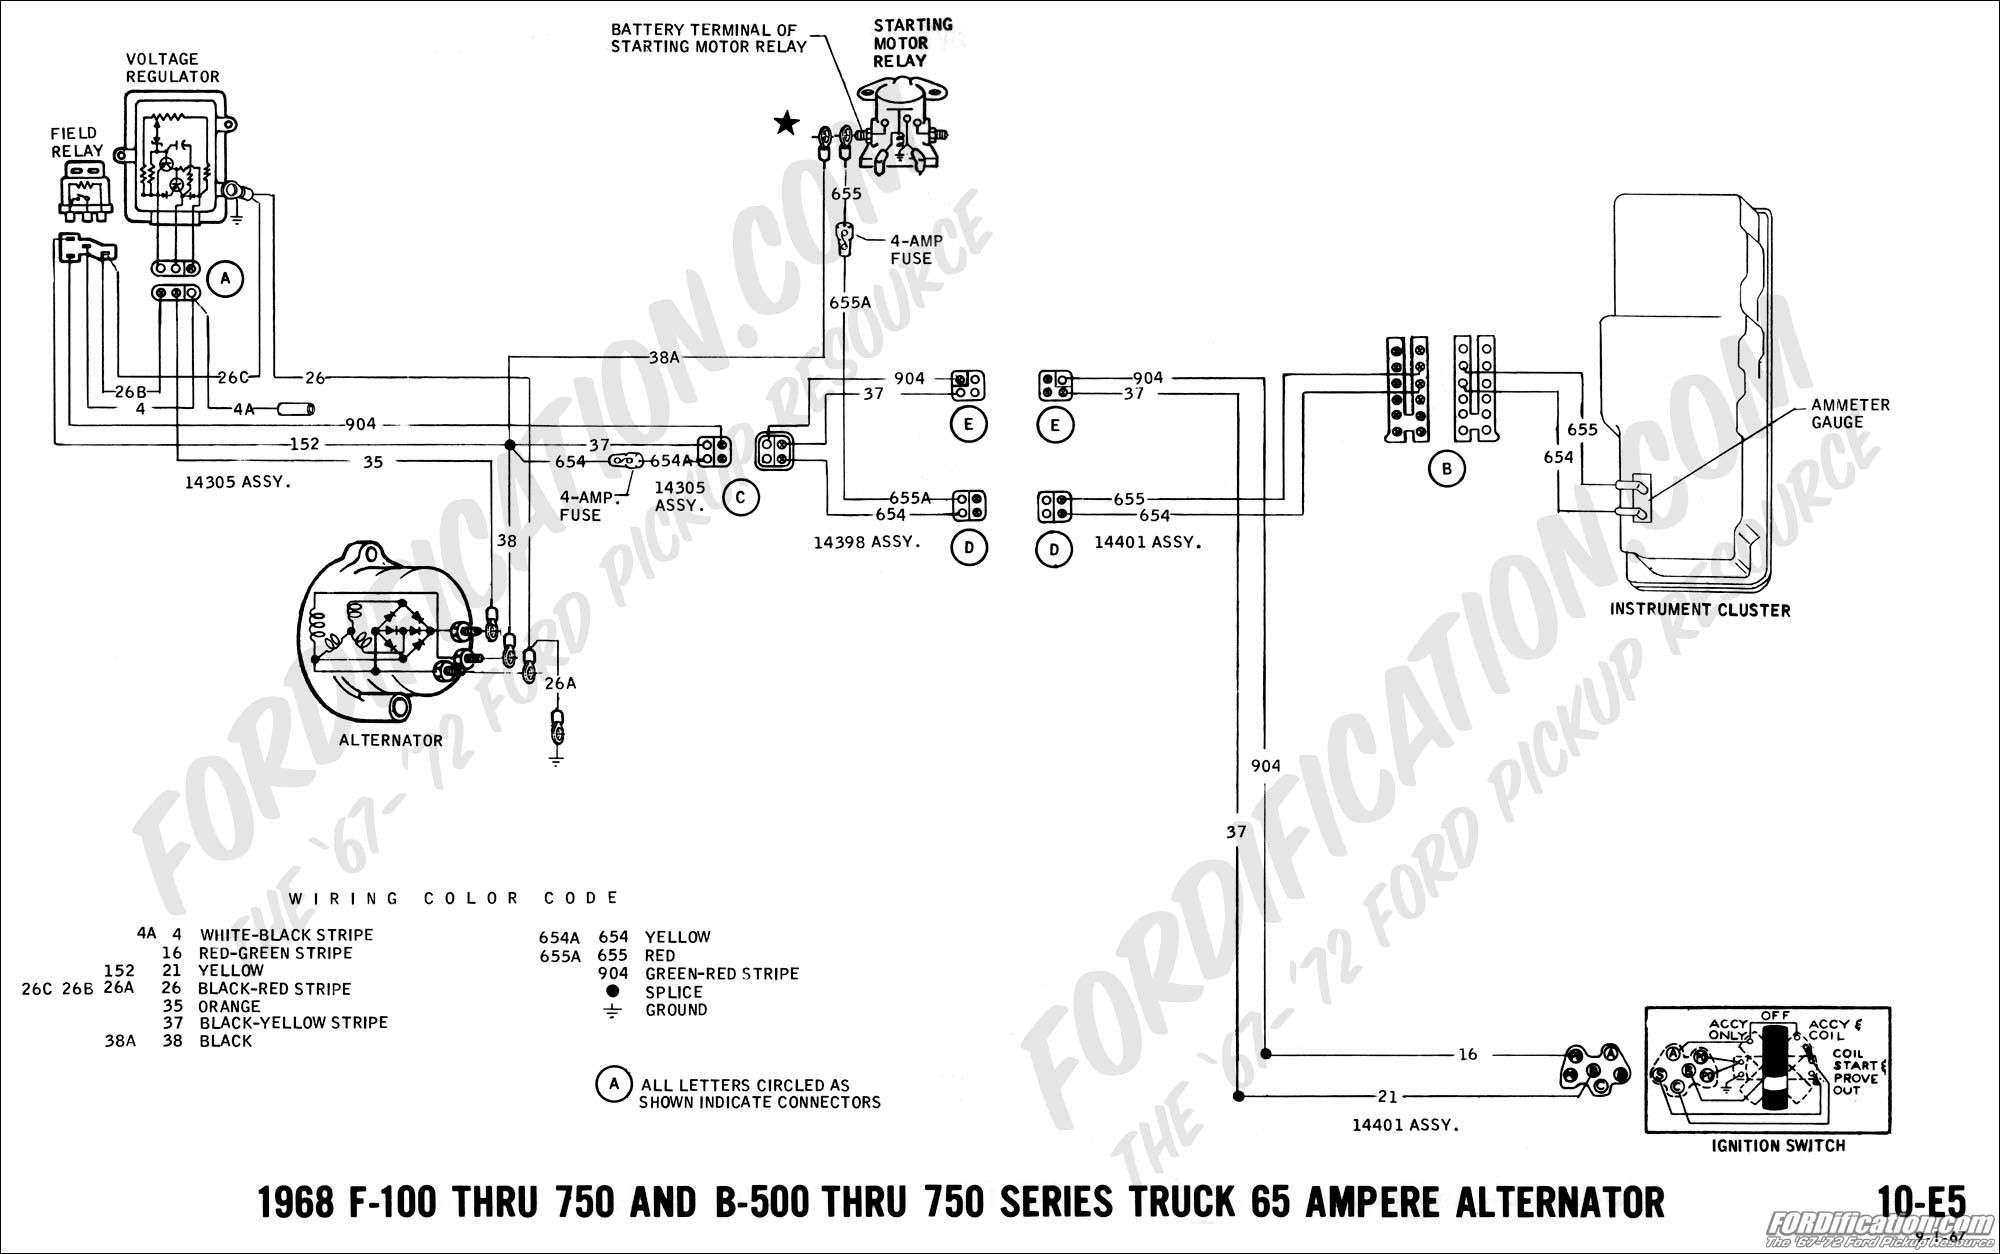 automotive ignition wiring diagram diagram diagramtemplate diagramsample [ 2000 x 1254 Pixel ]